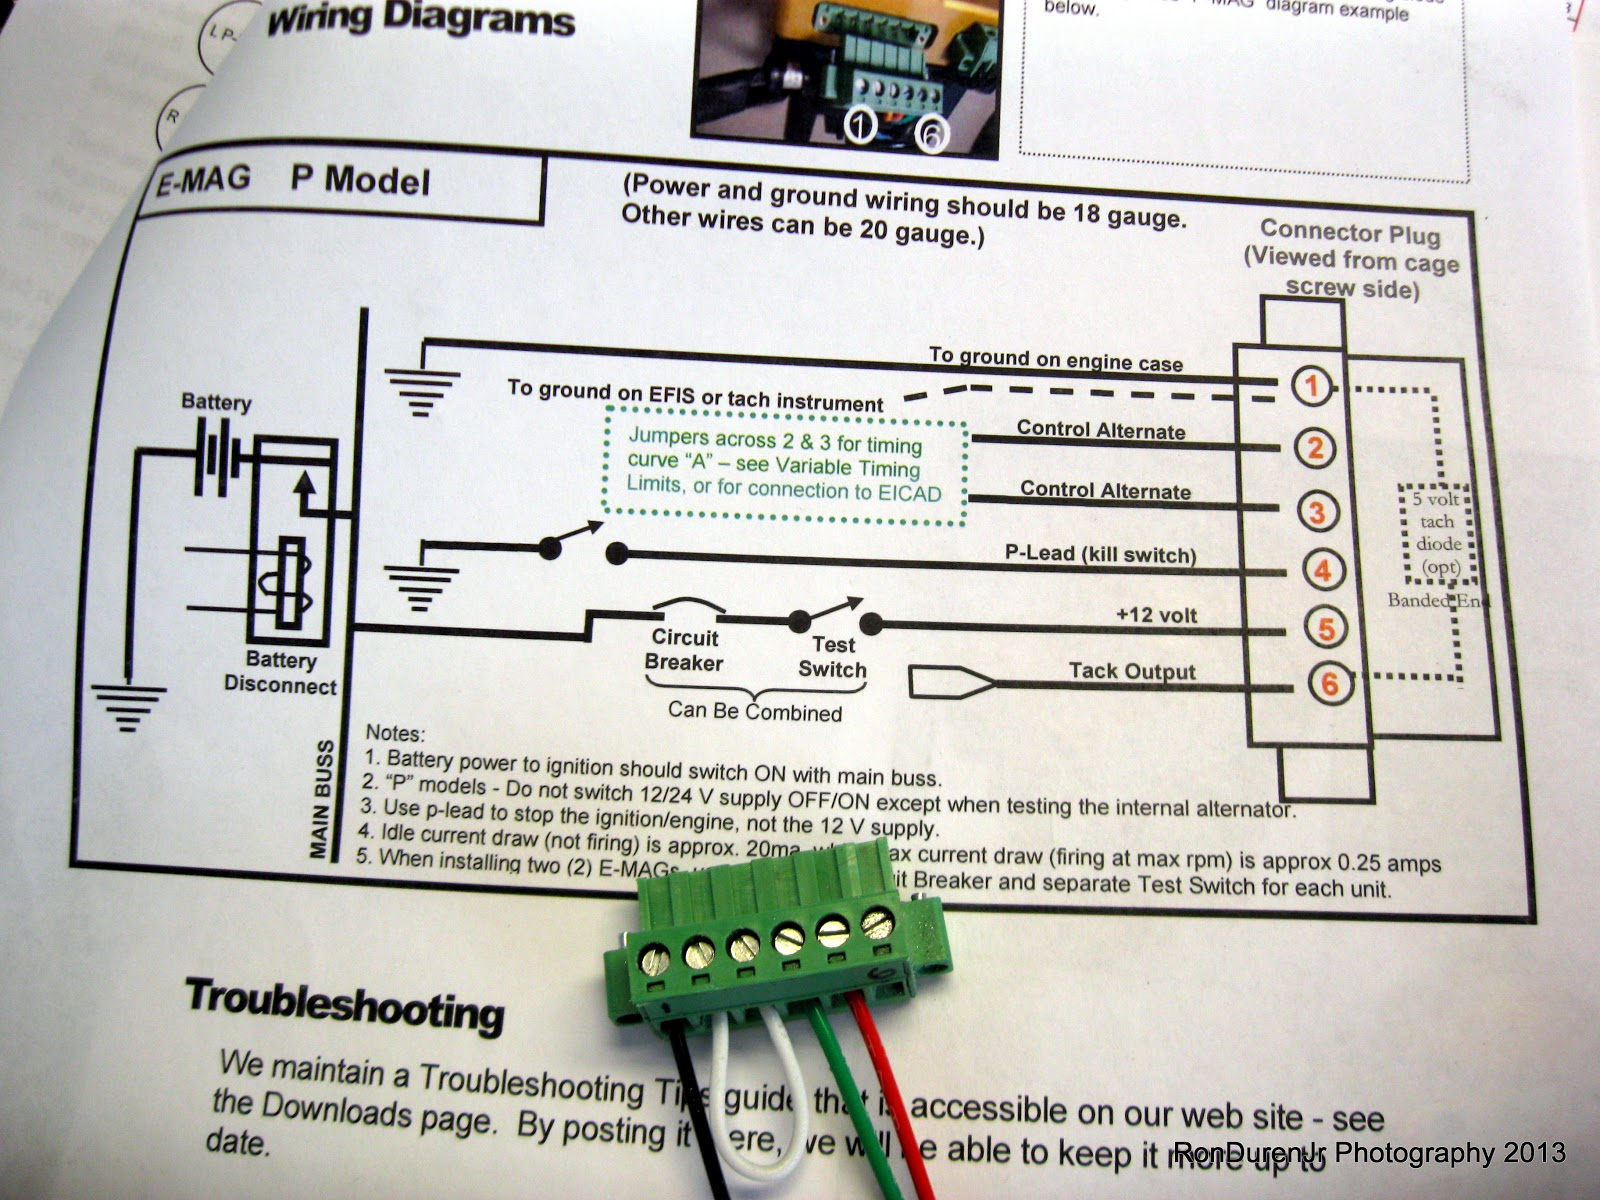 D Autocop Xs Manual Wiring Diagram Image also Dfa A A Aead C furthermore Fz S in addition Maxresdefault additionally Image A A. on tracking gps installation wiring diagram